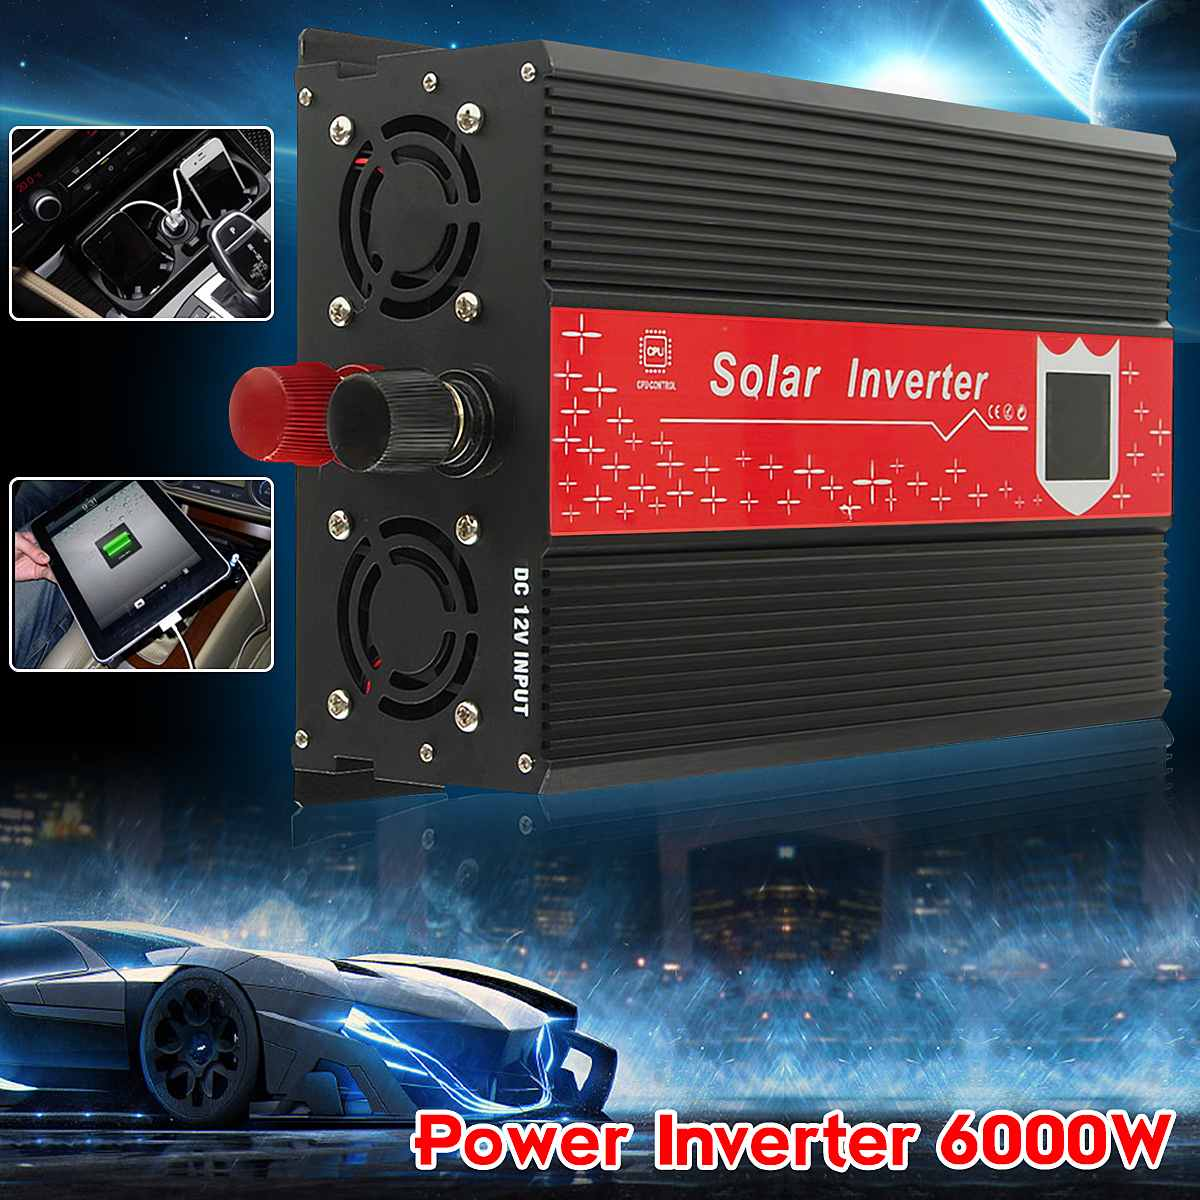 3000W Peak 6000W Solar Power Inverter DC 12V To AC 240V Sine Wave Car Home Inverter Voltage Transformer Convertor